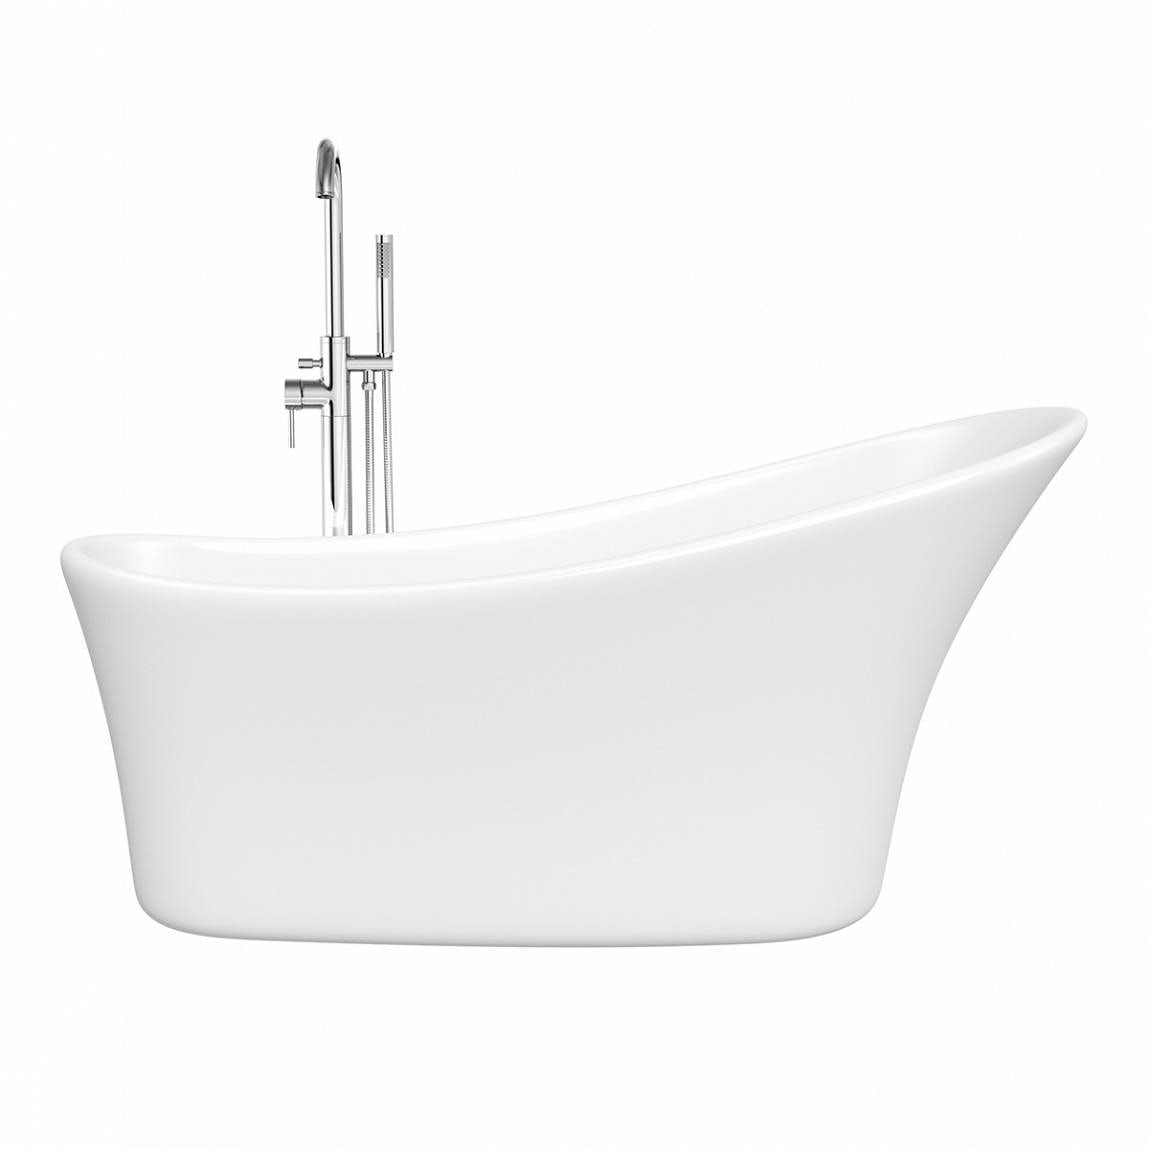 Mode Harding single ended slipper bath VictoriaPlumcom